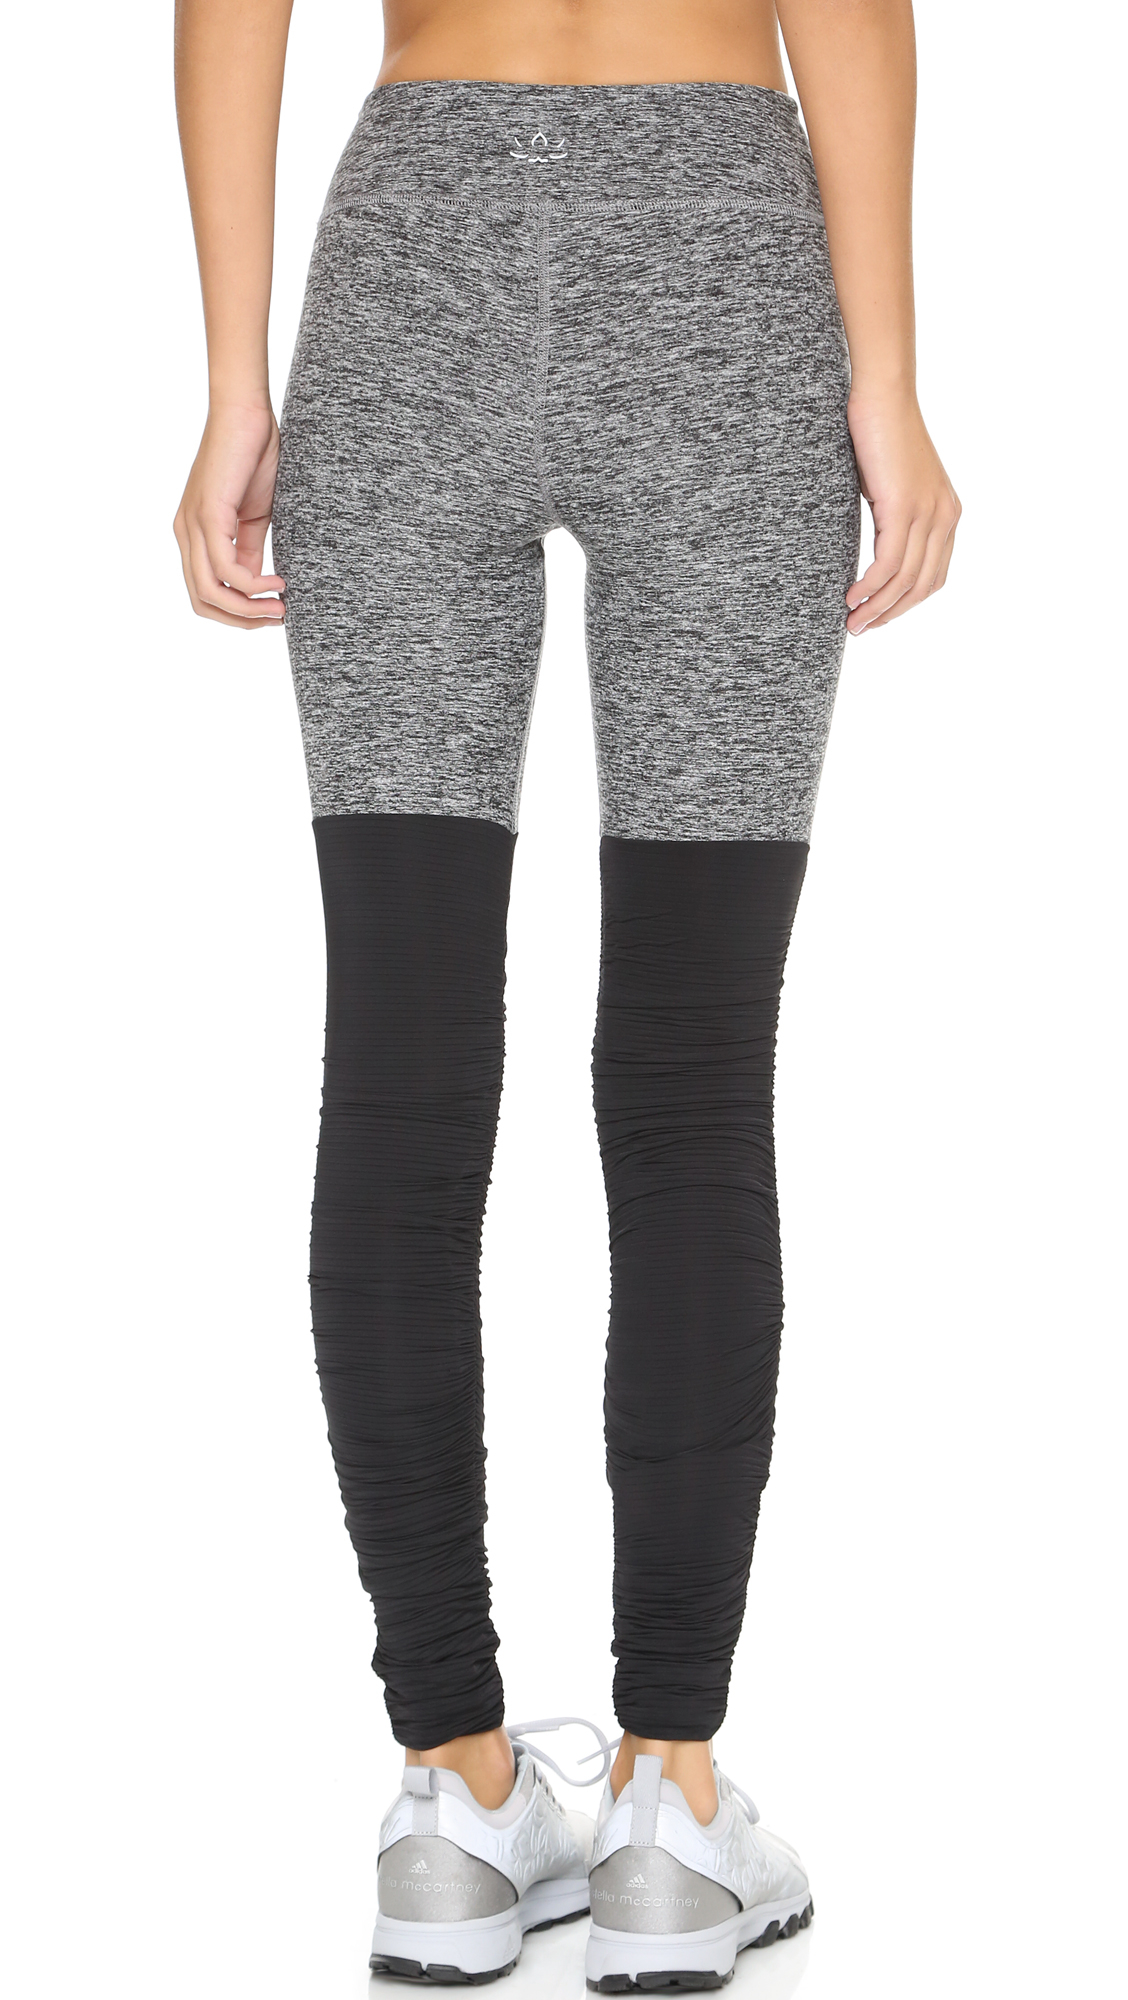 Lyst - Beyond Yoga Space Dye Leg Warmer Leggings